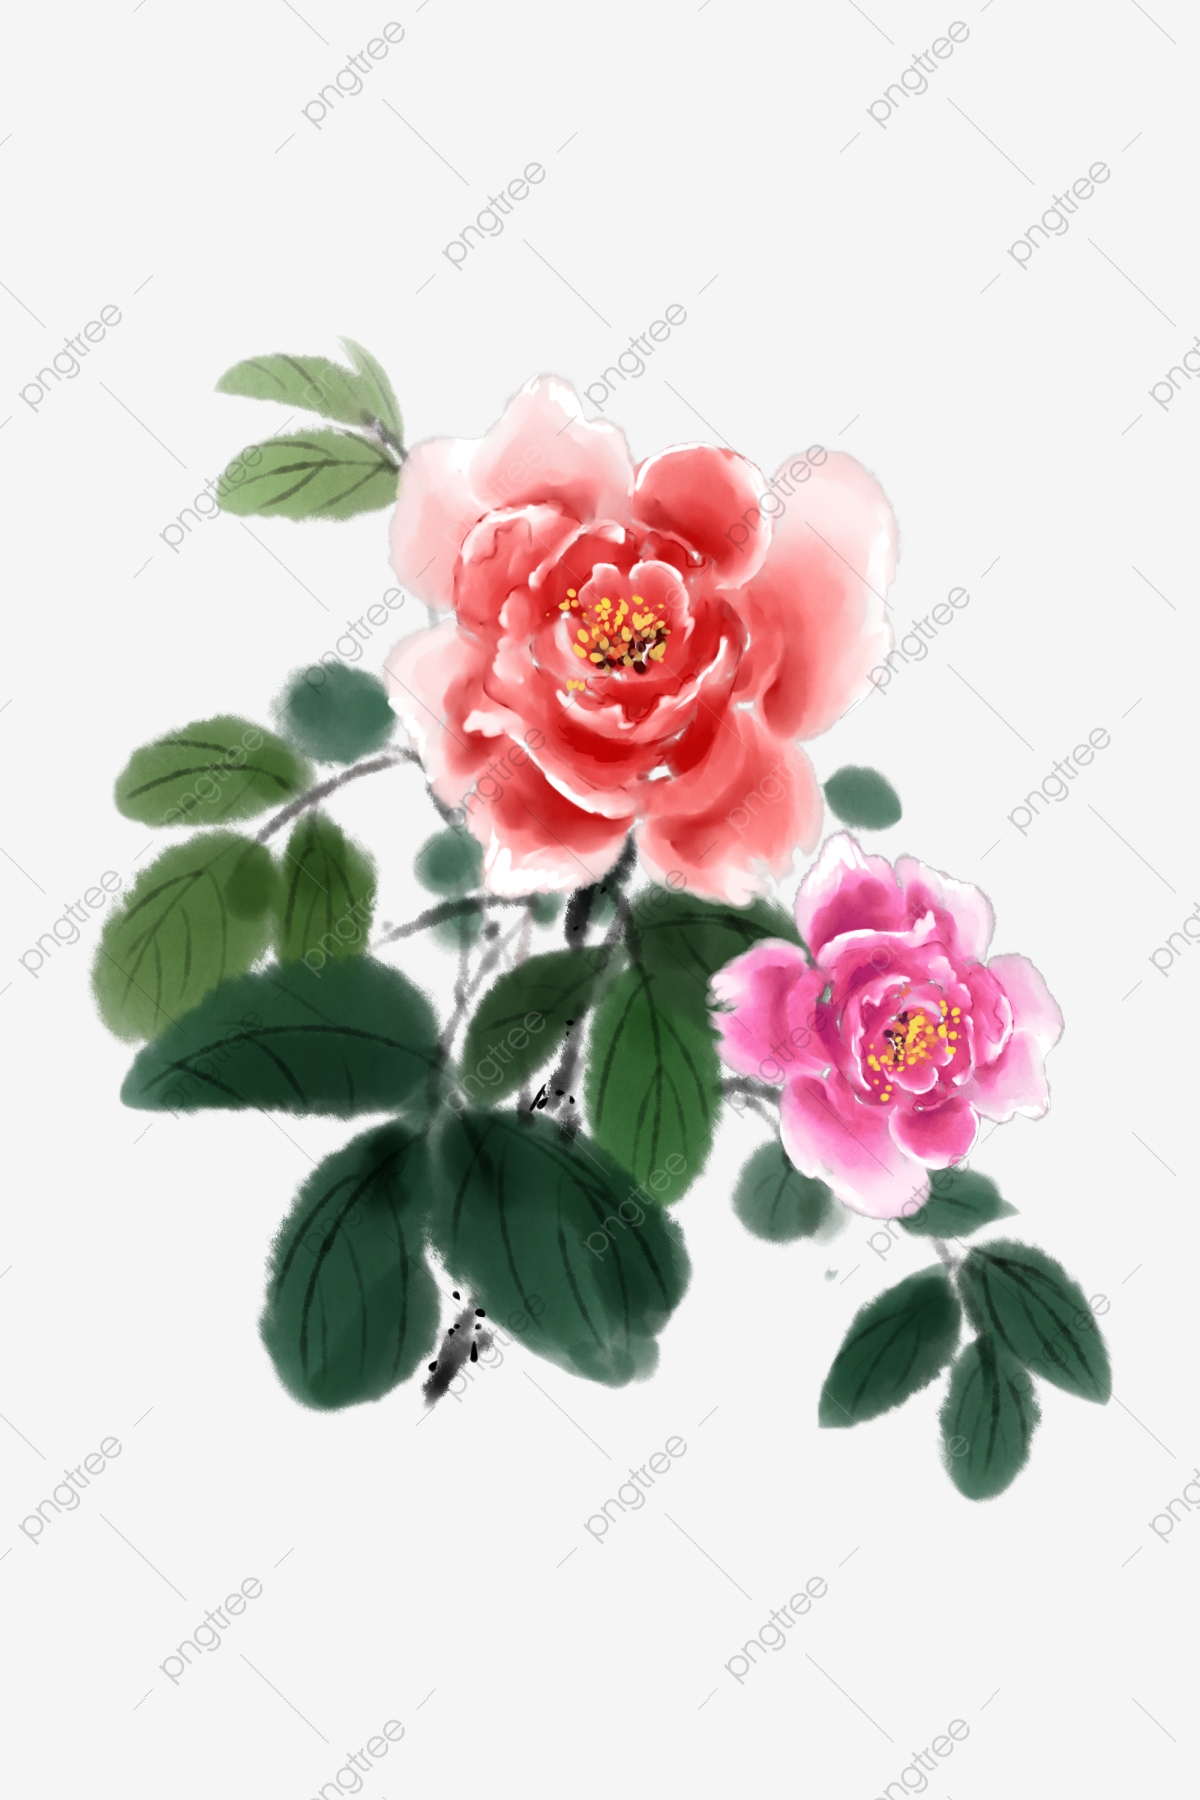 Peony flowers pink natural. Peonies clipart graduation flower